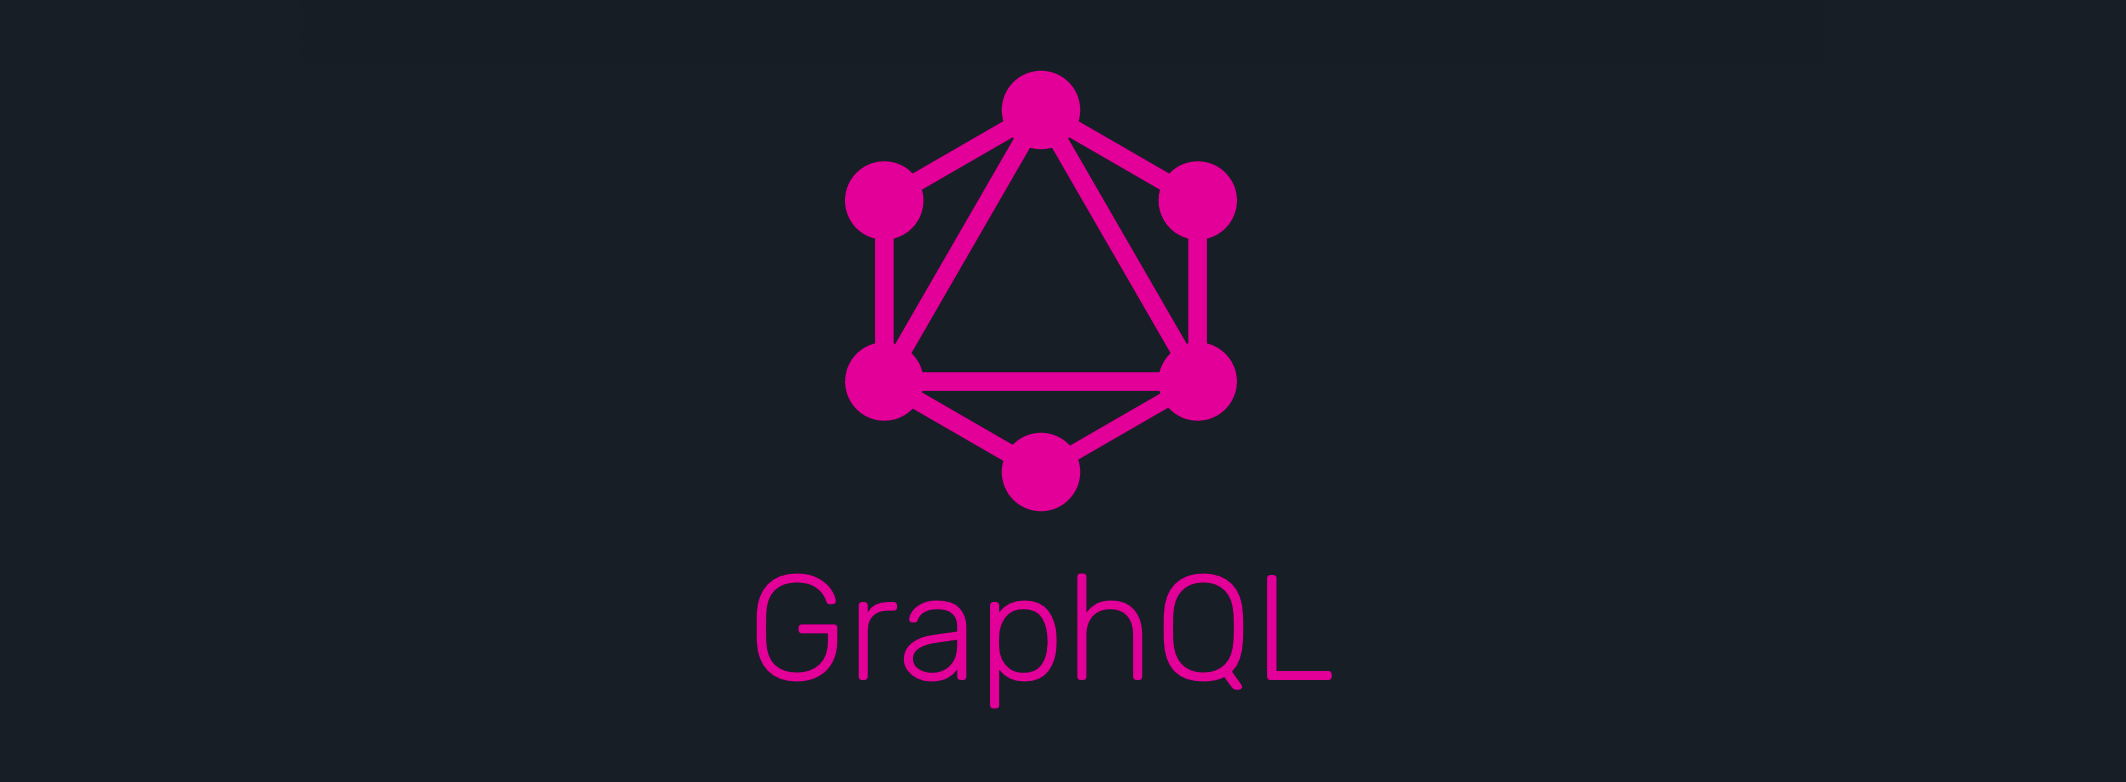 GraphQL is the future of APIs